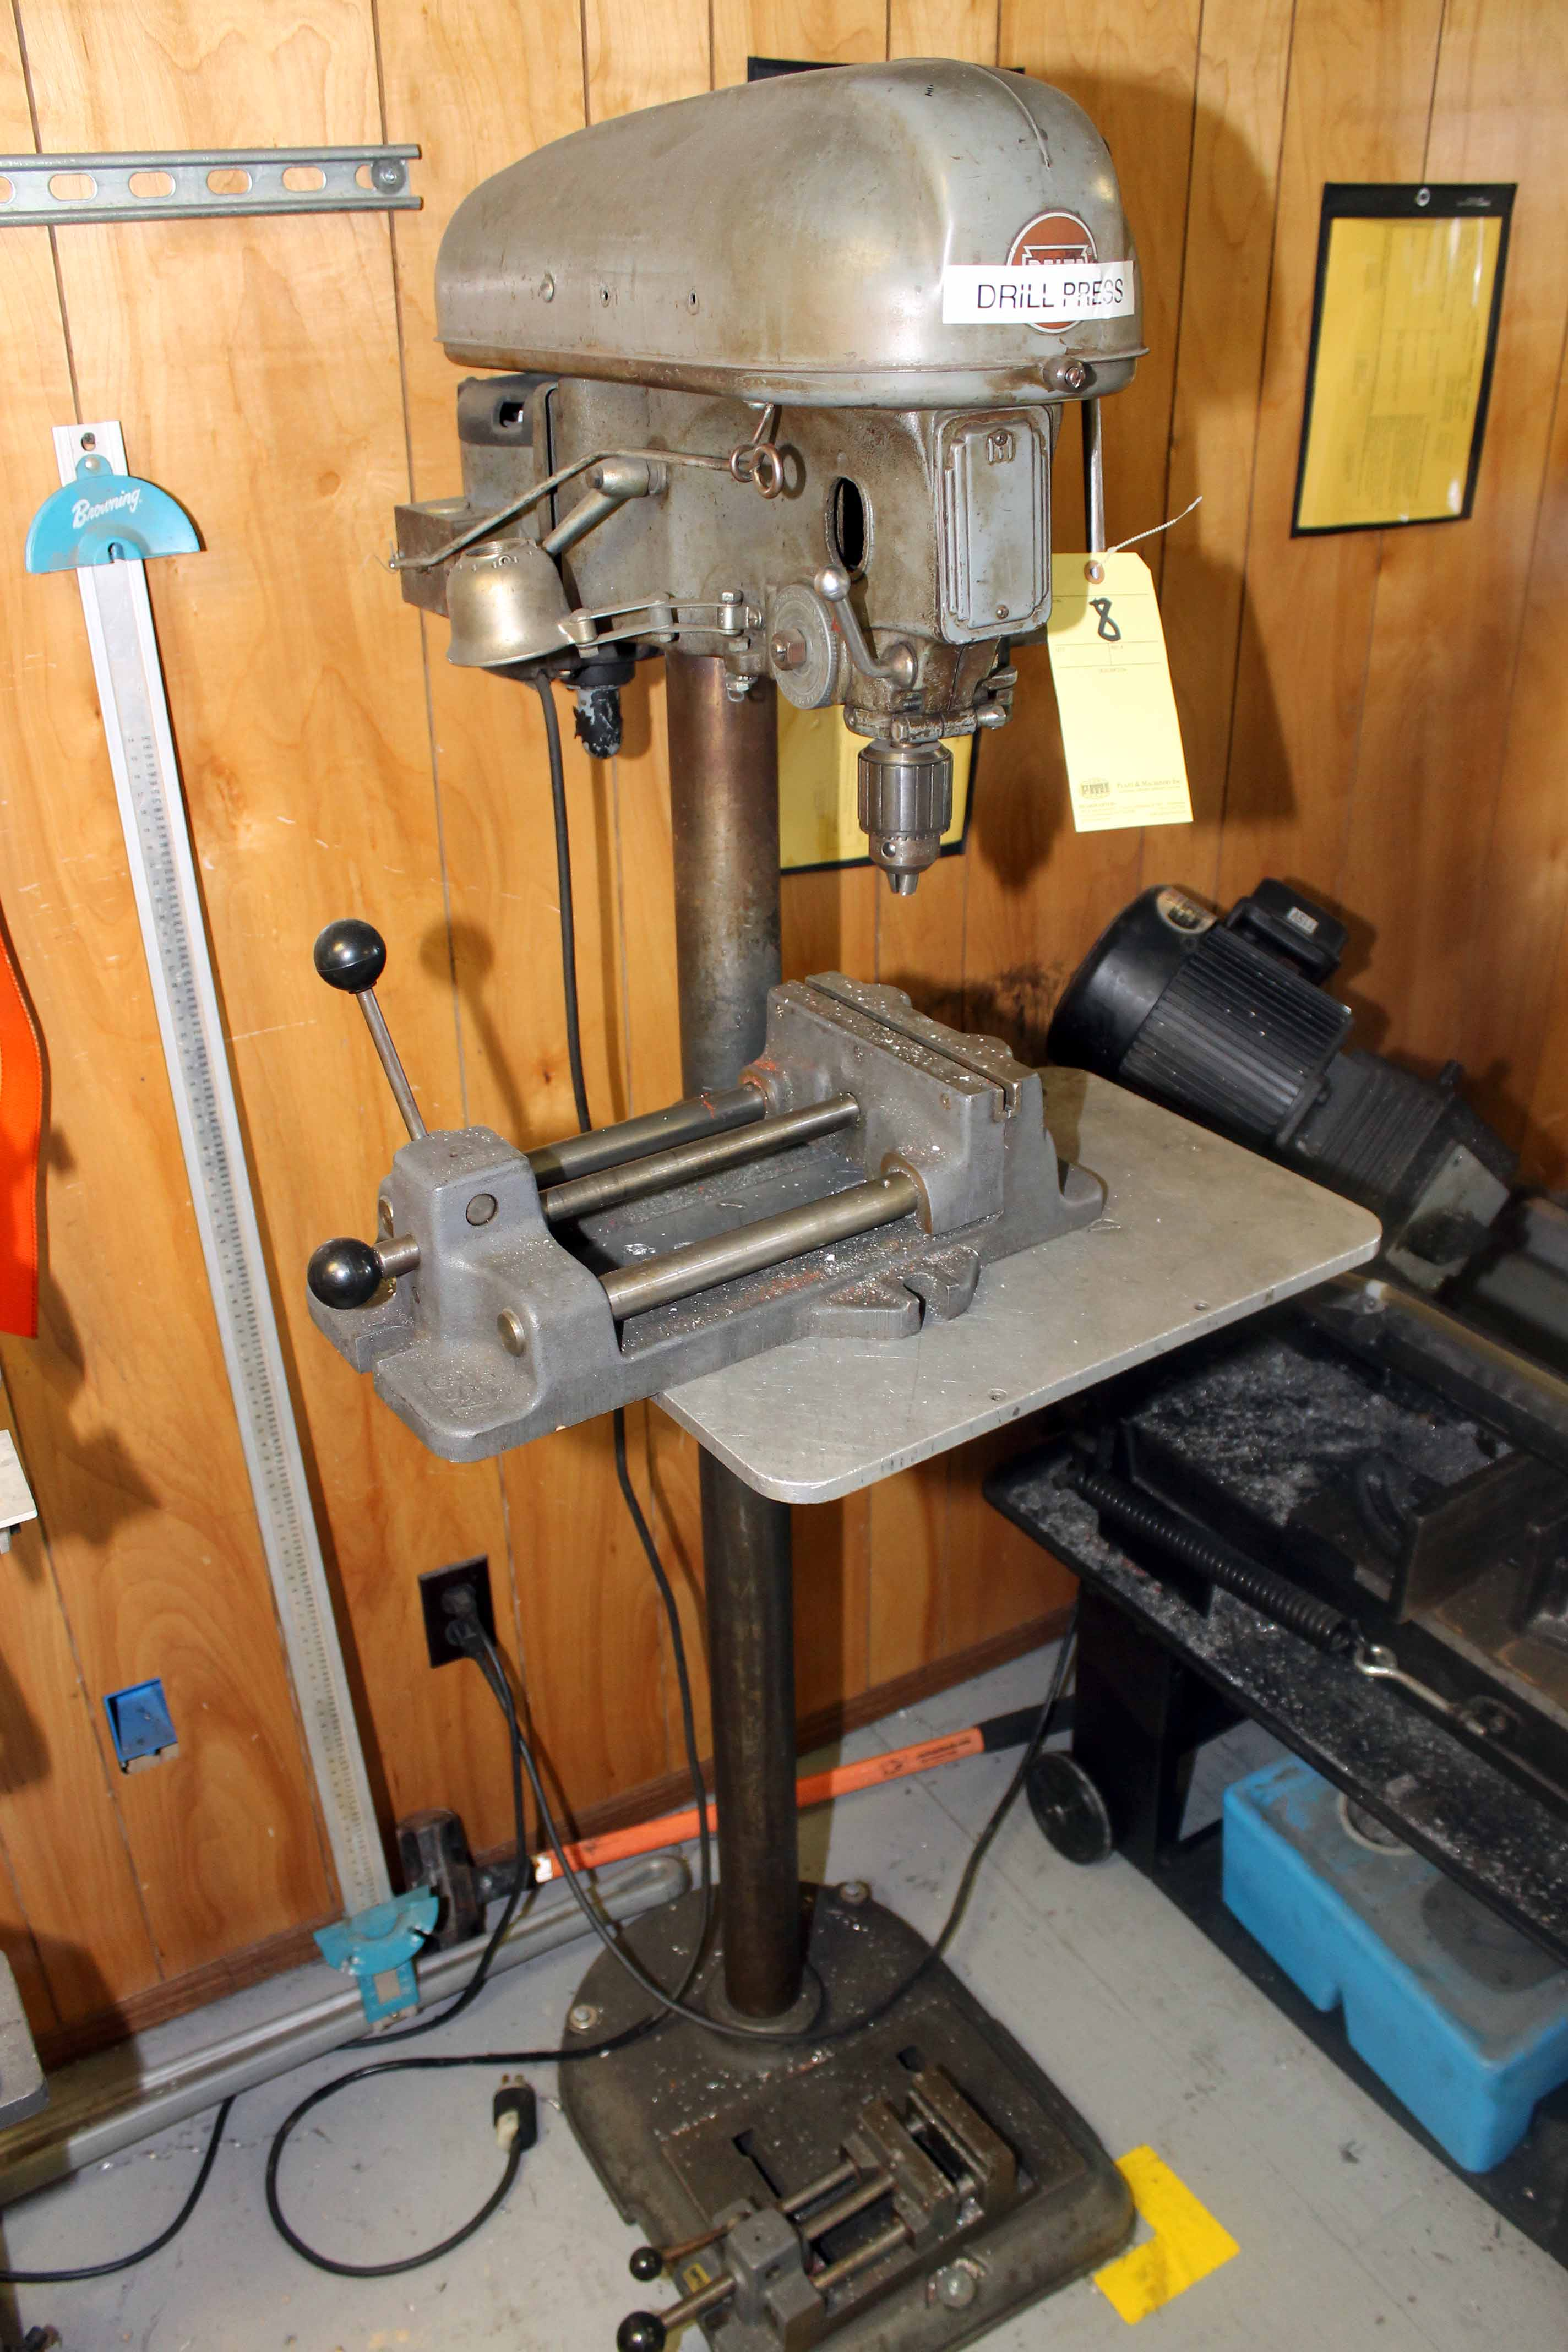 Lot 8 - FLOOR TYPE DRILL PRESS, DELTA, S/N 114-3032 (Location 4 - Park Row)